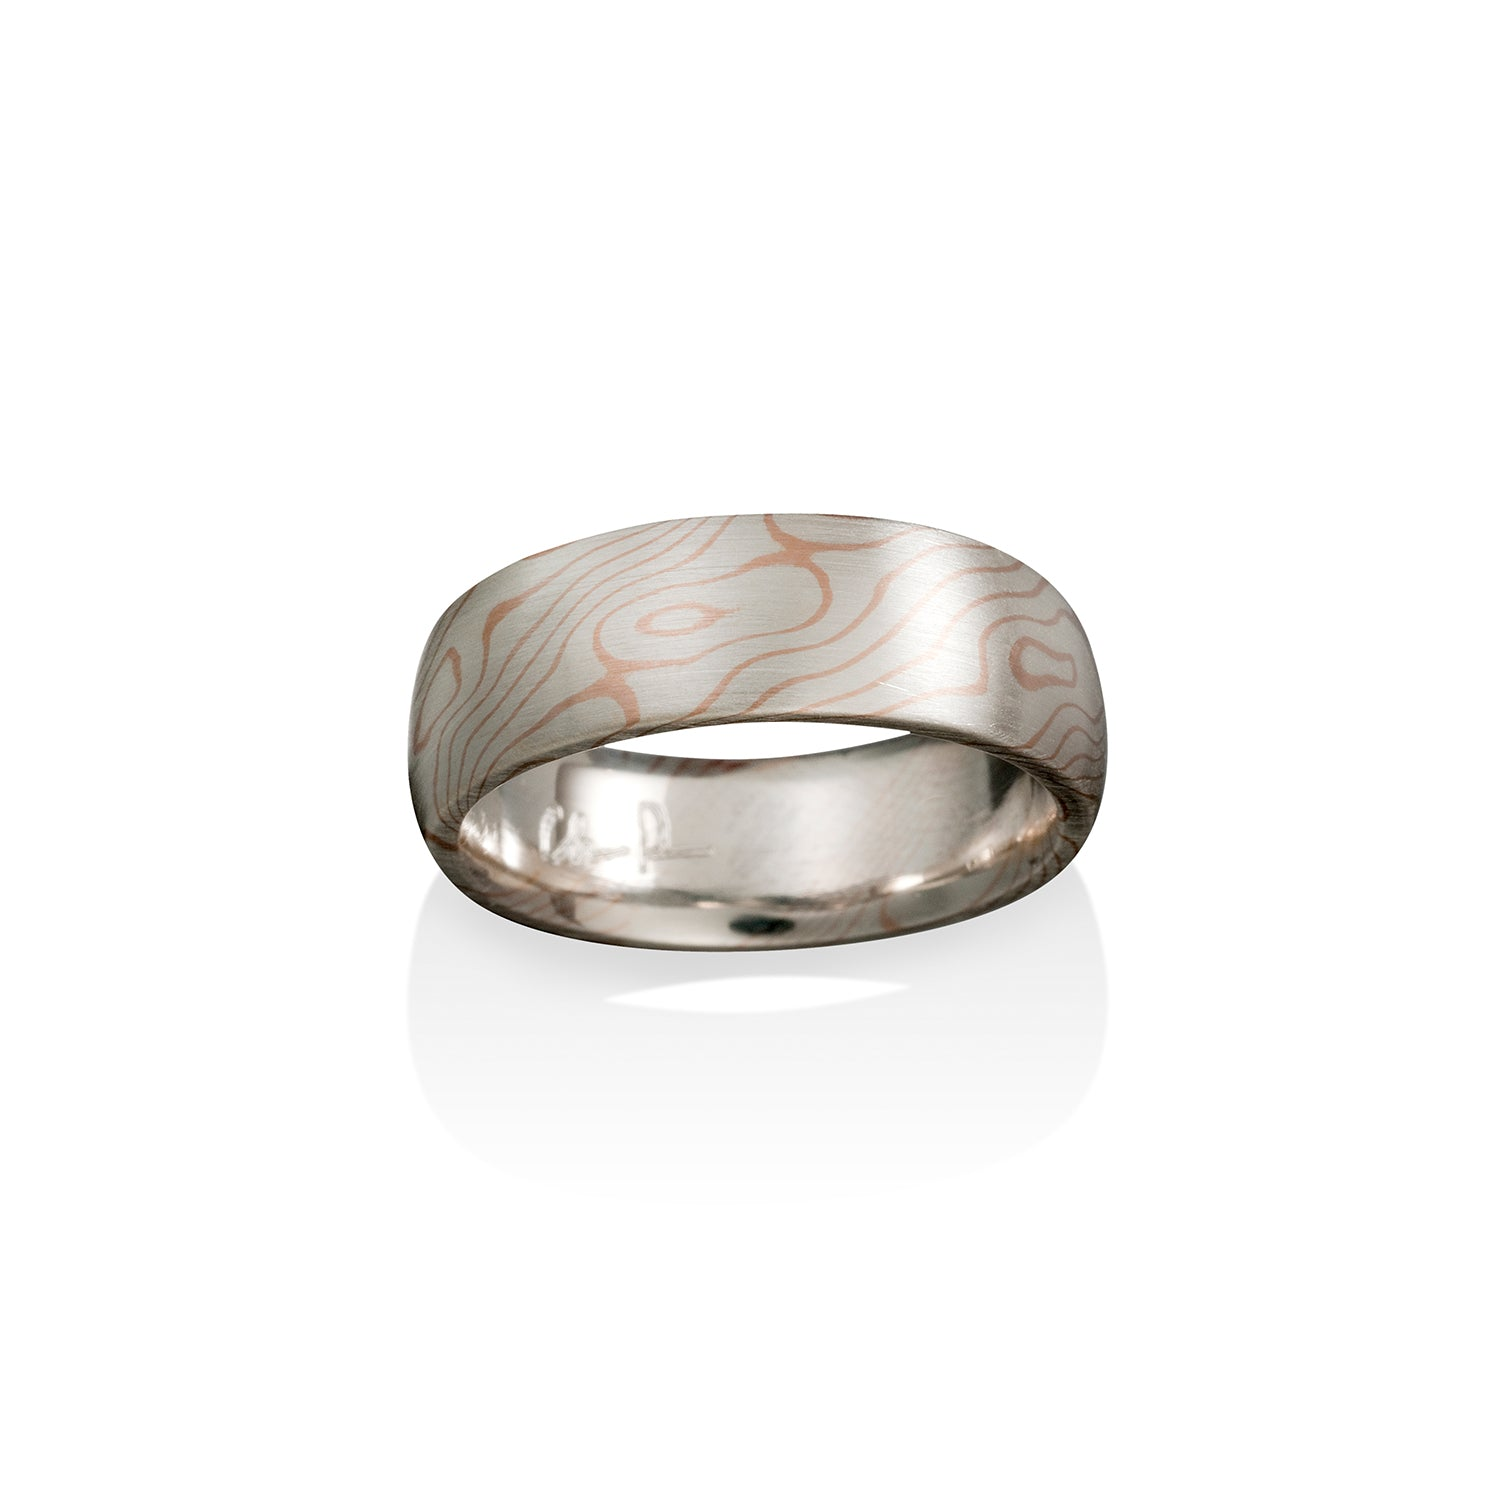 Aspen by Chris Ploof - Talisman Collection Fine Jewelers